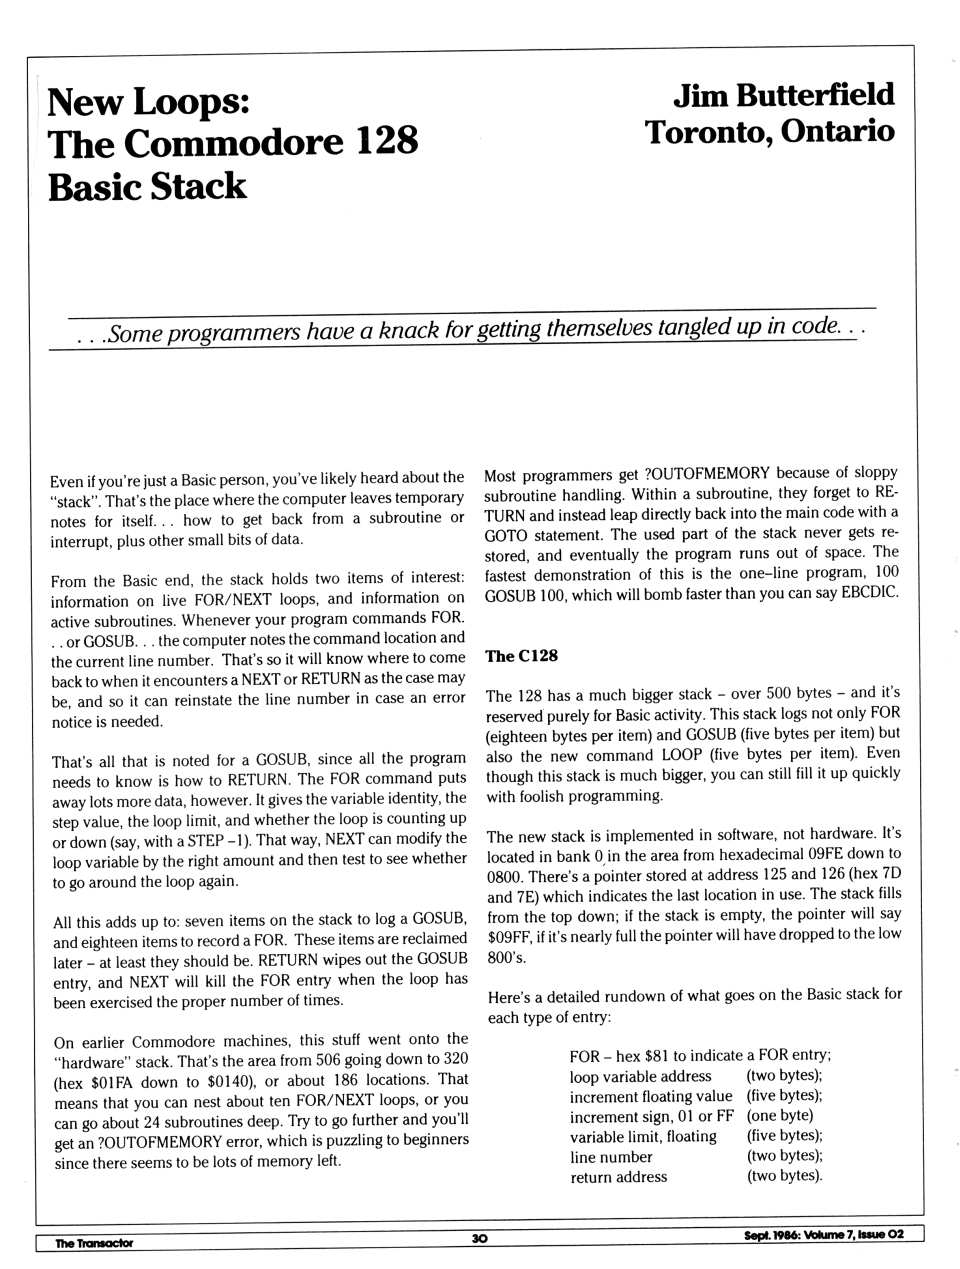 [New Loops: The Commodore 128 Basic Stack (1/3)]